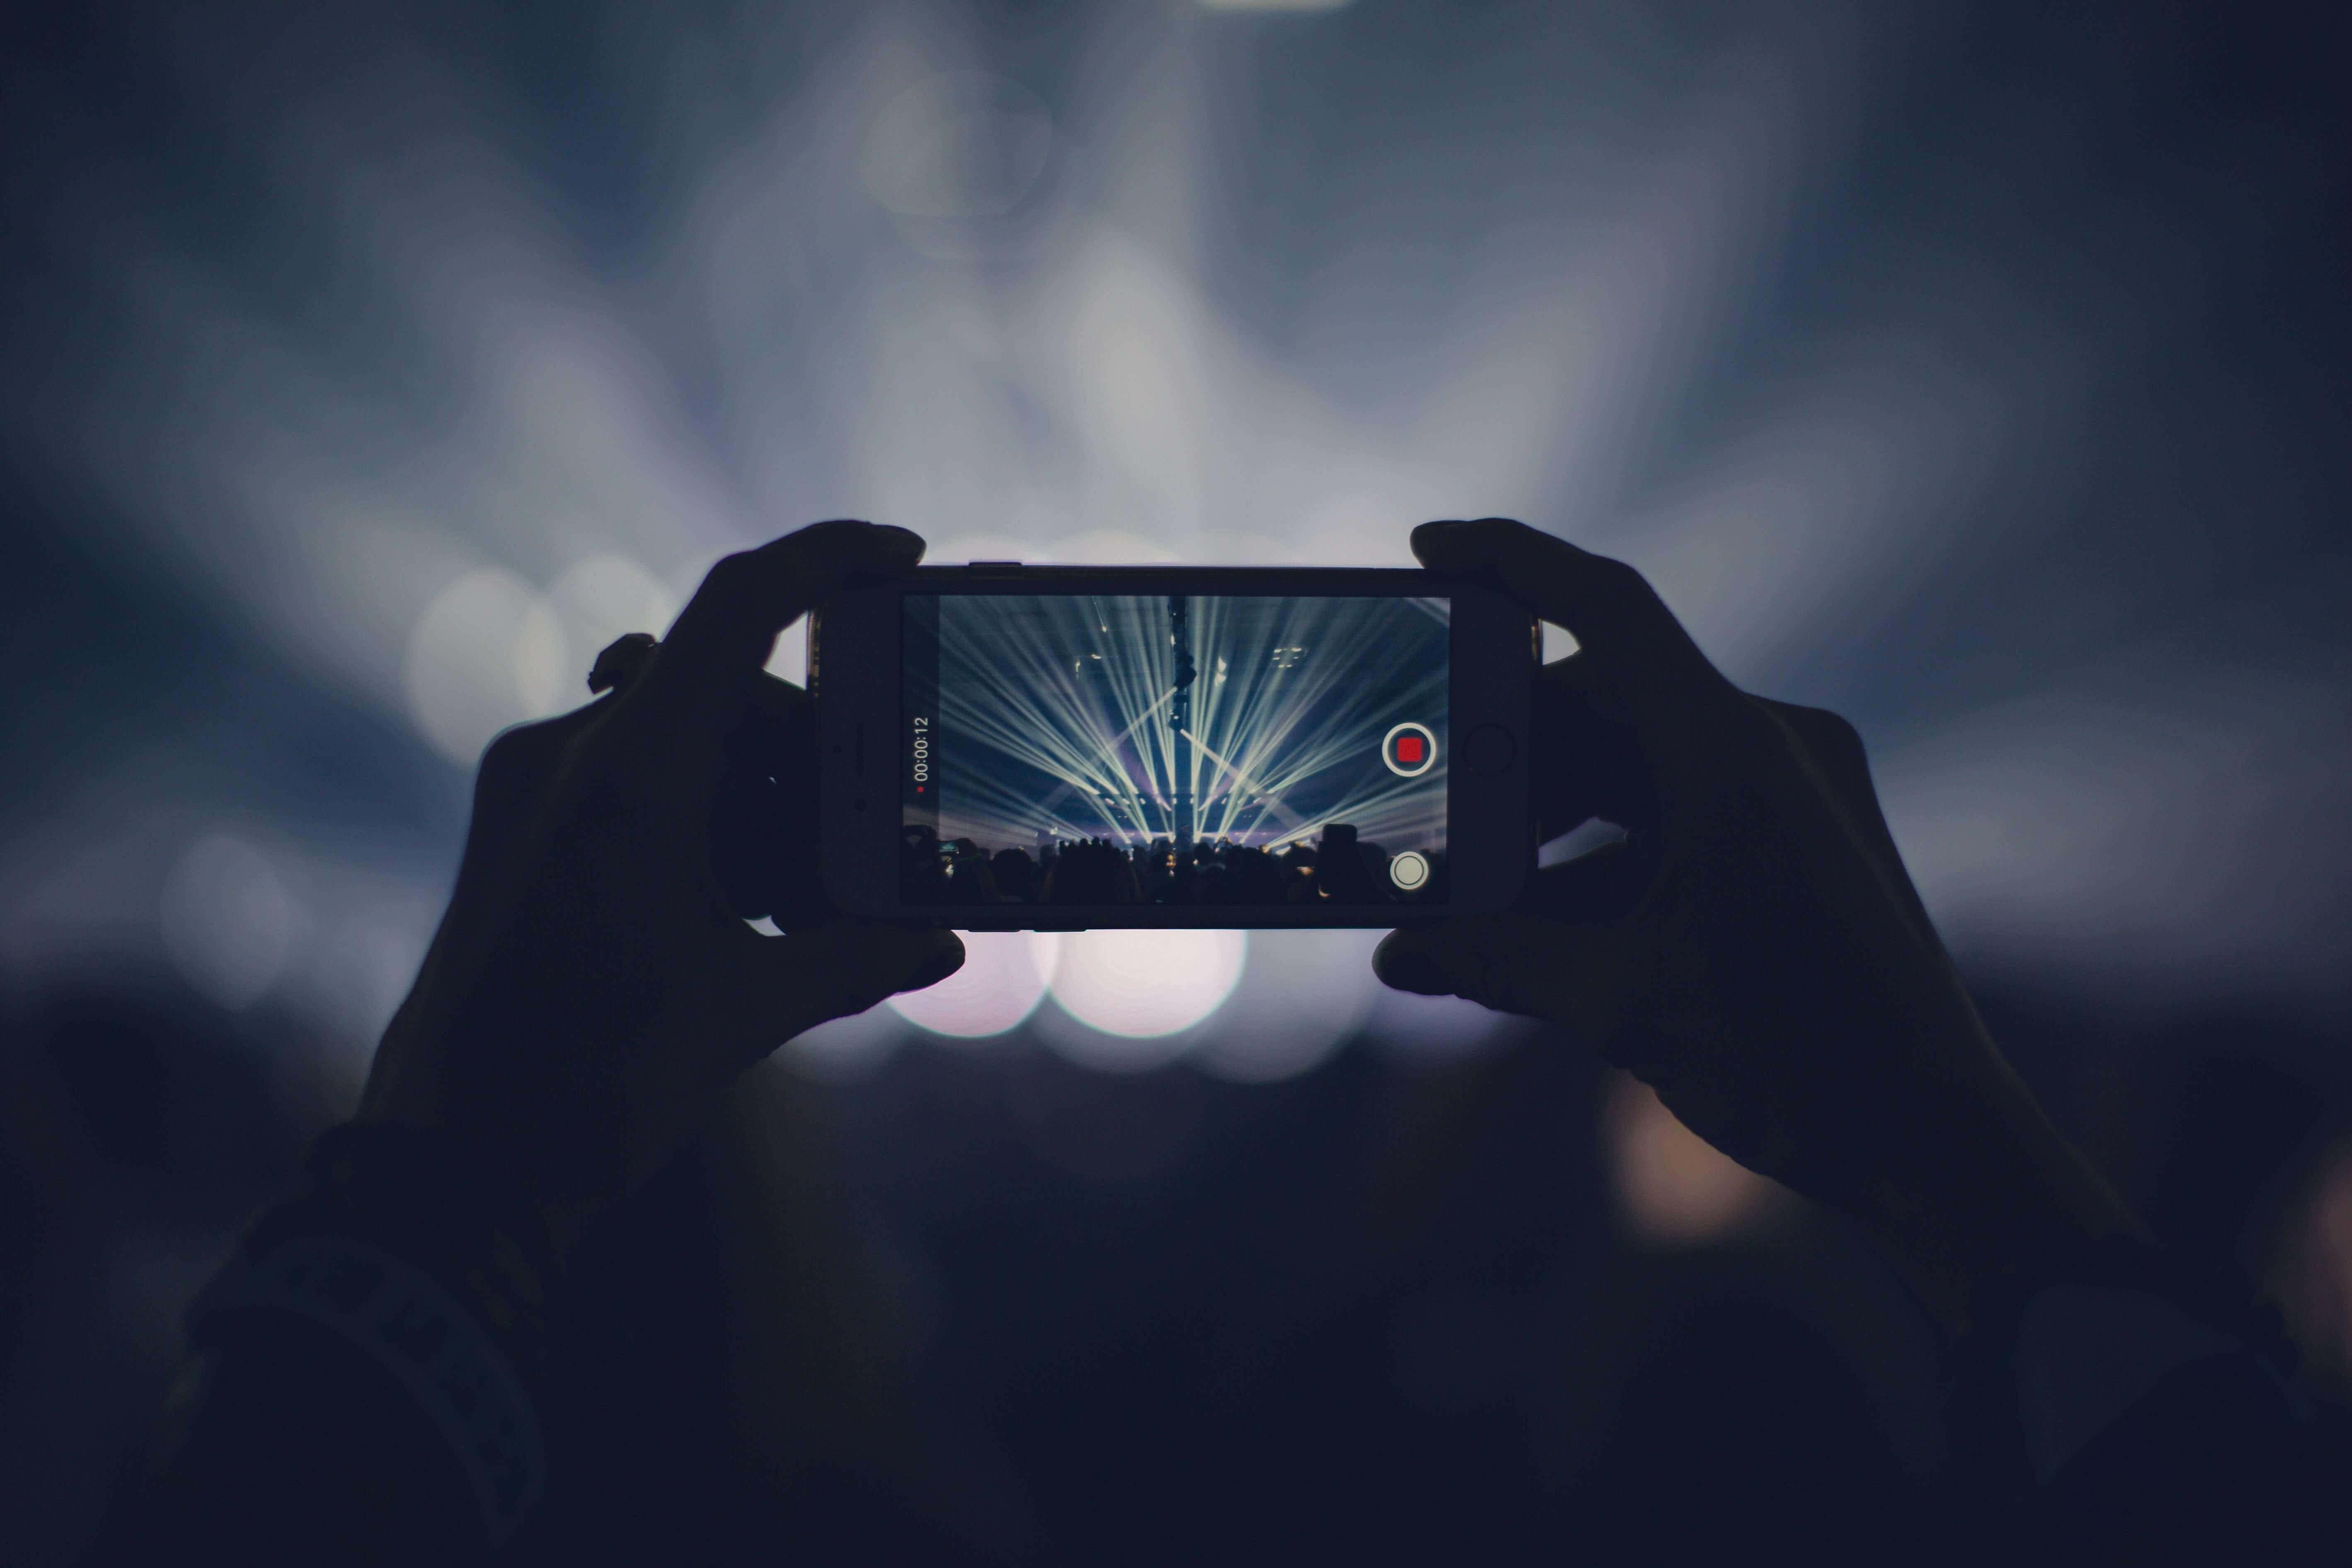 Branded content creator recording concert with smartphone.